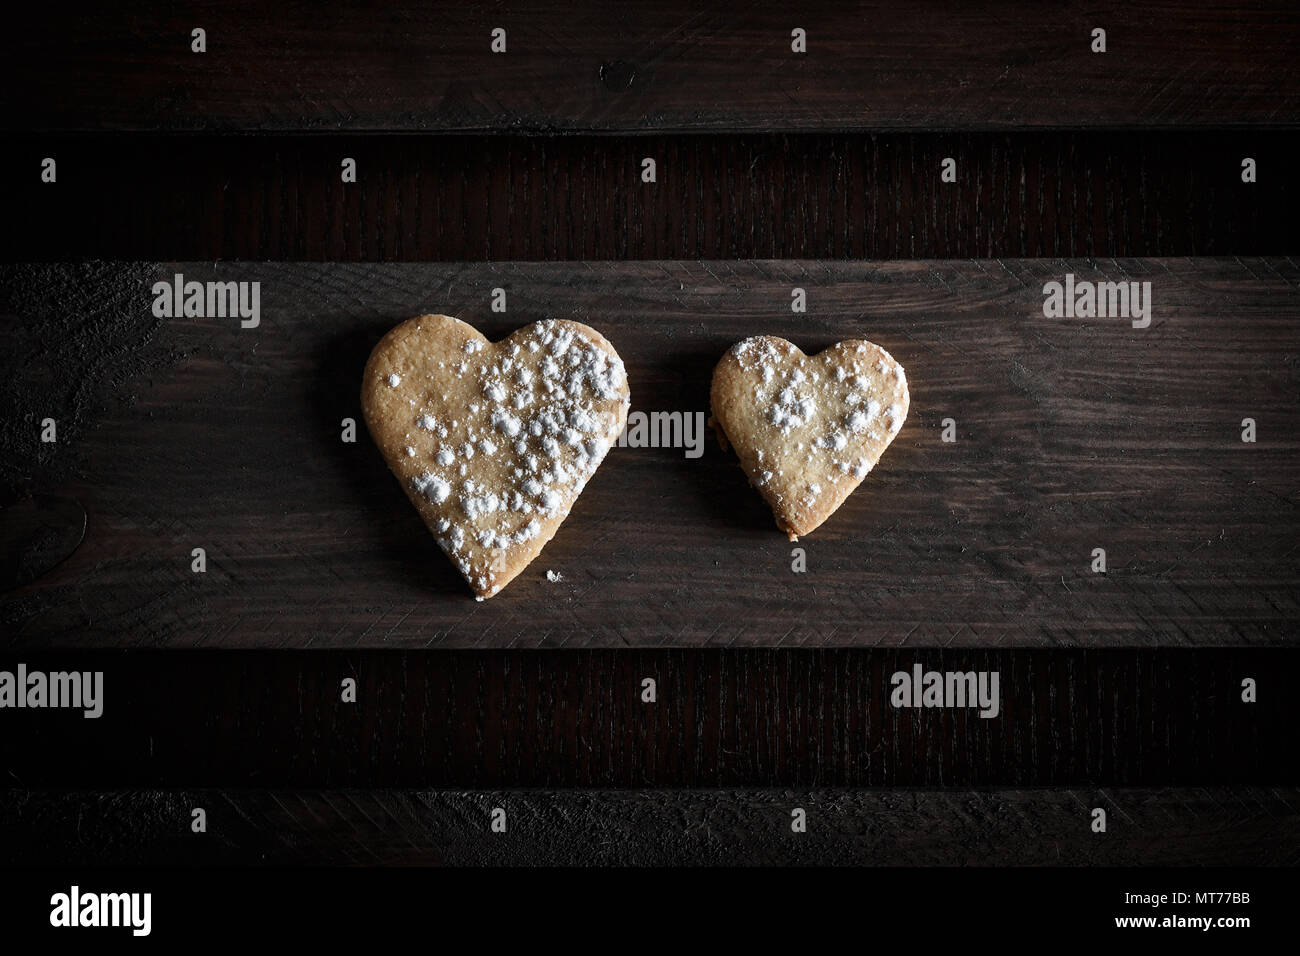 Two delicious home-made heart-shaped cookies sprinkled with icing sugar in a wooden board. Horizontal image seen from above. Concept of love in couple Stock Photo